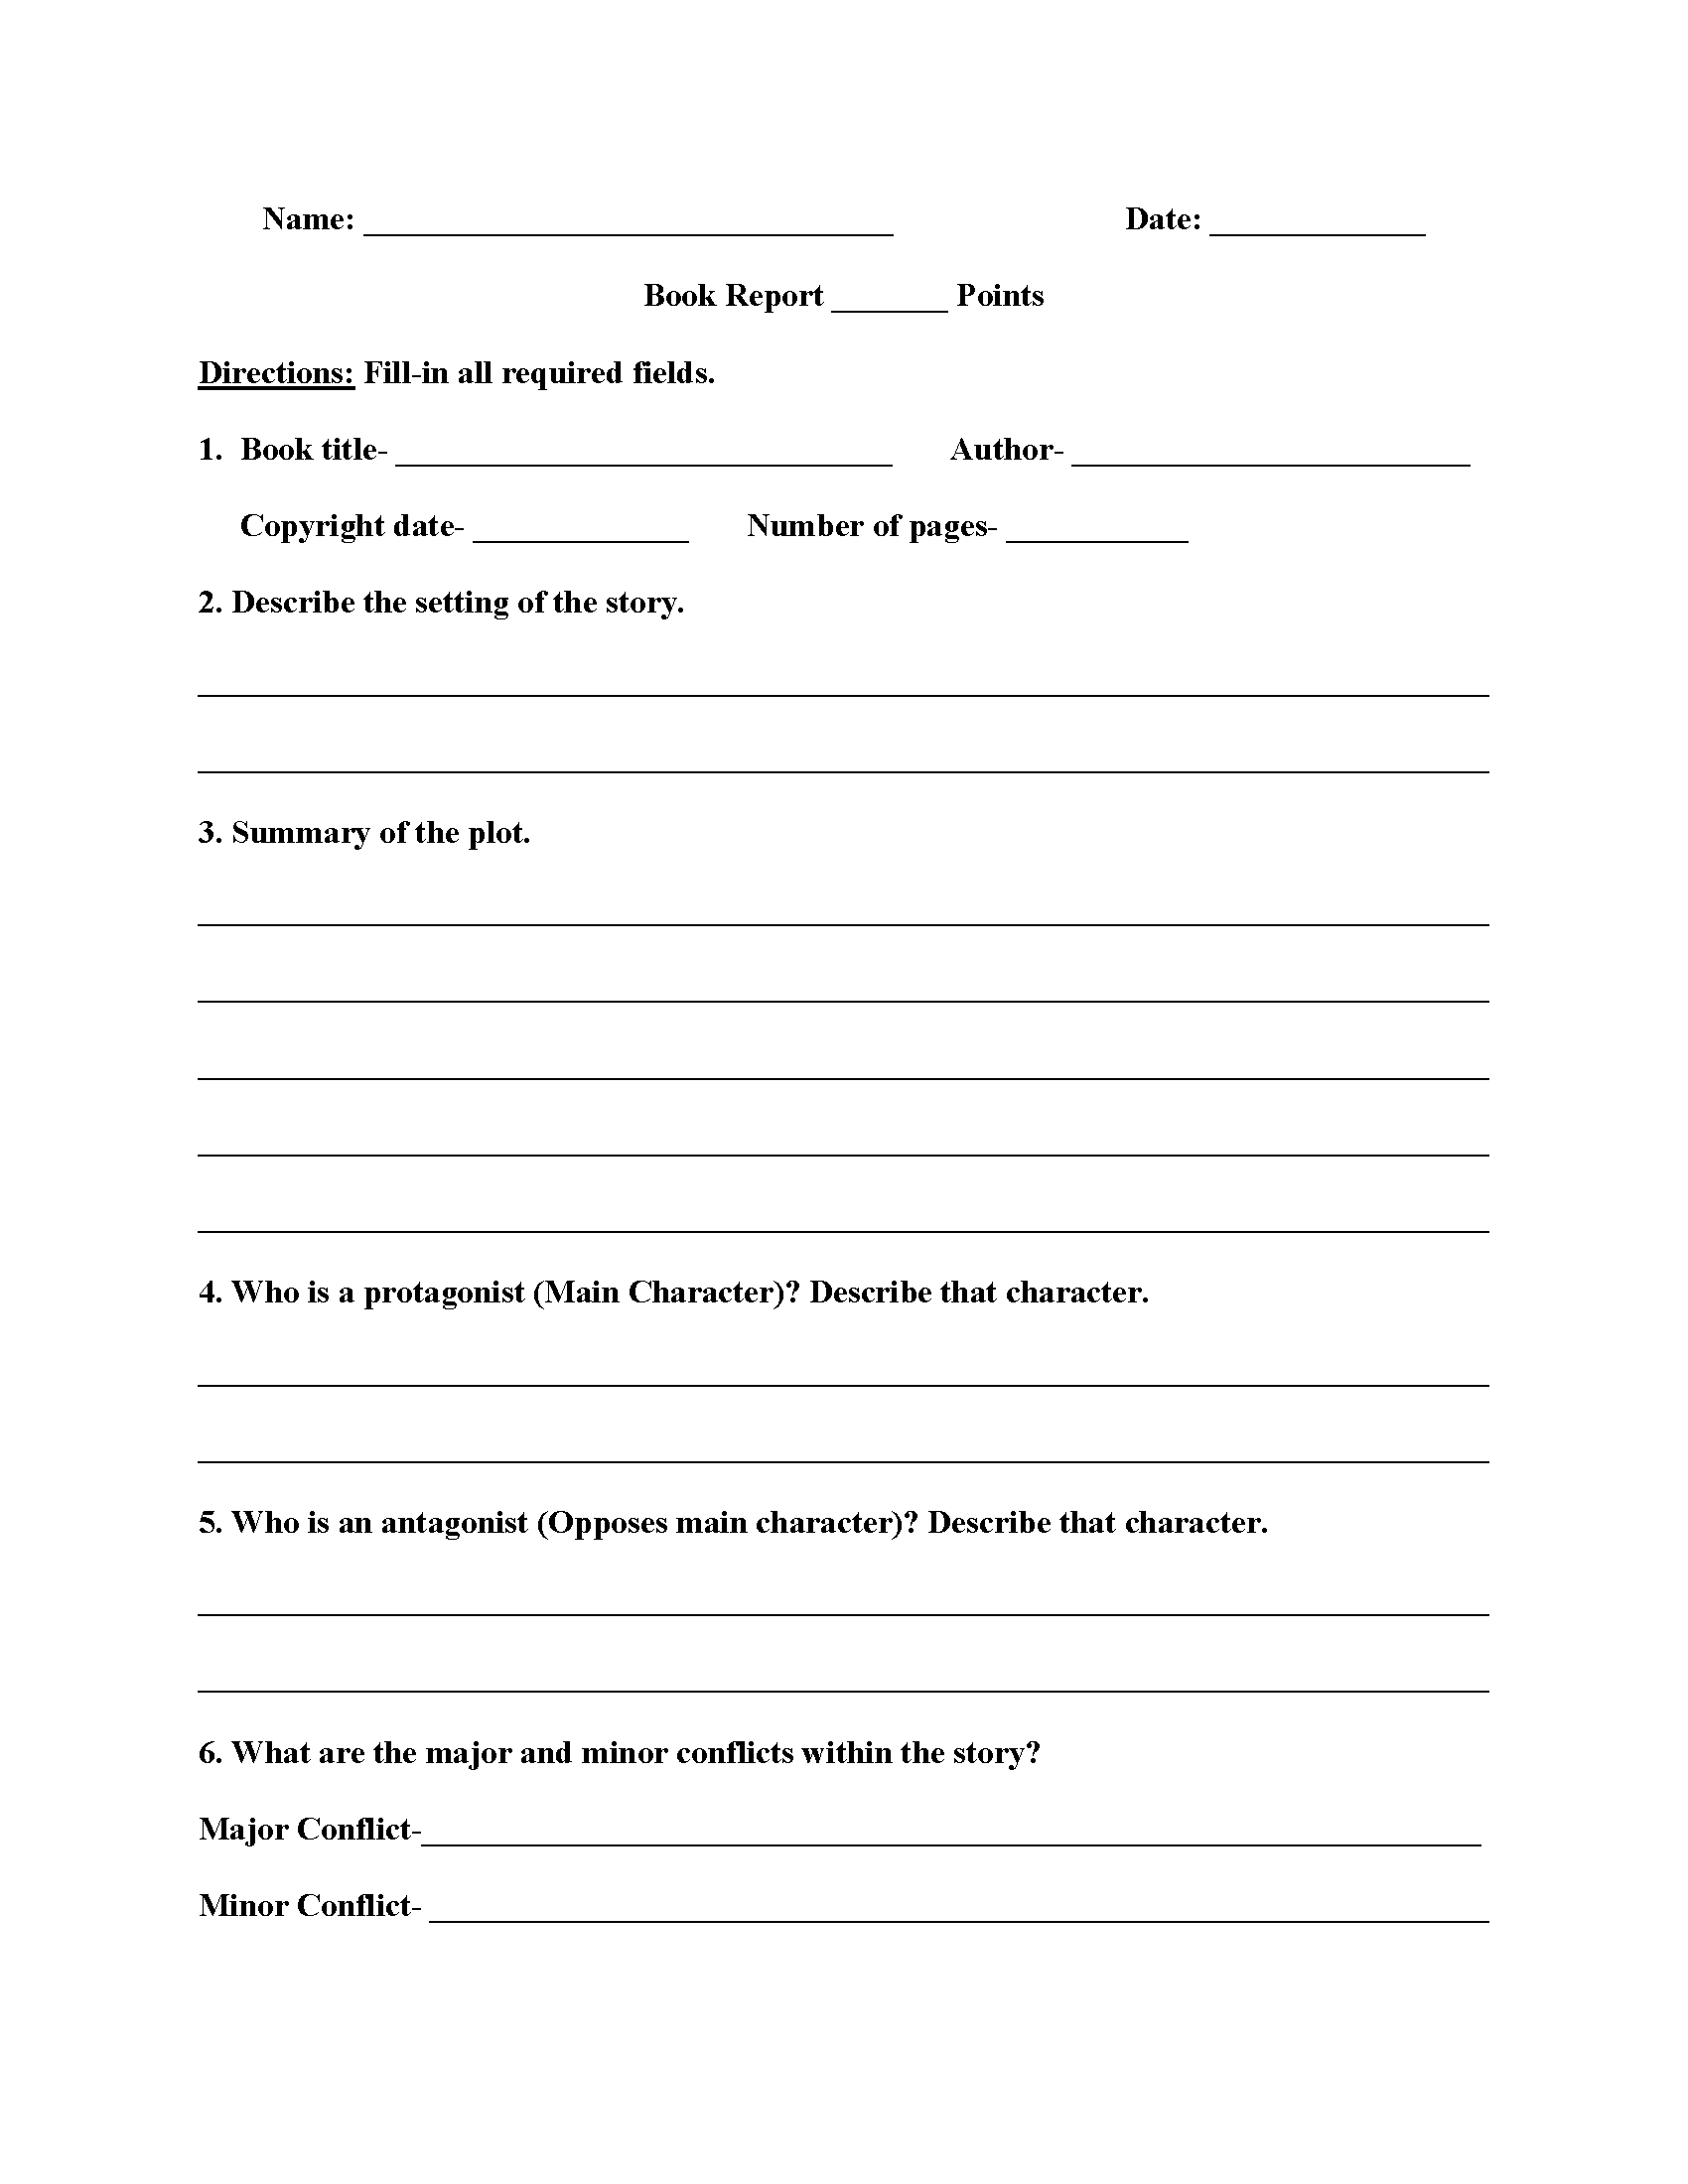 Poetry Book Report Worksheet